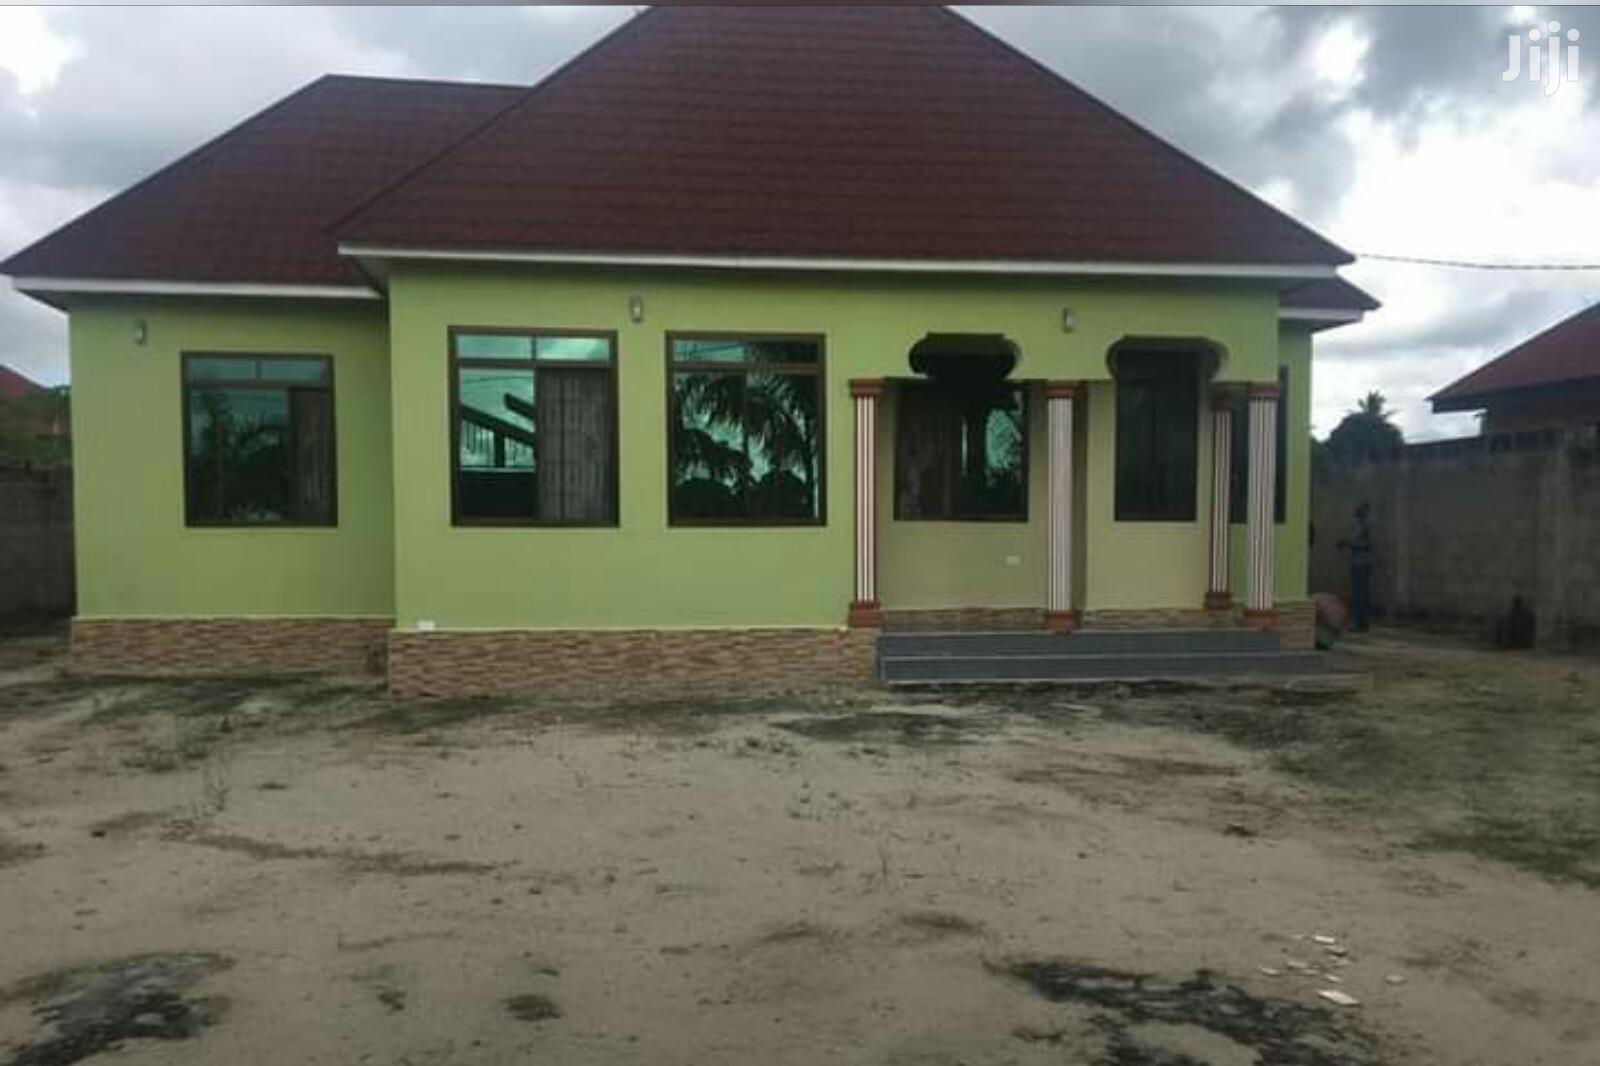 4 Bedrooms House for Sale, Kigamboni